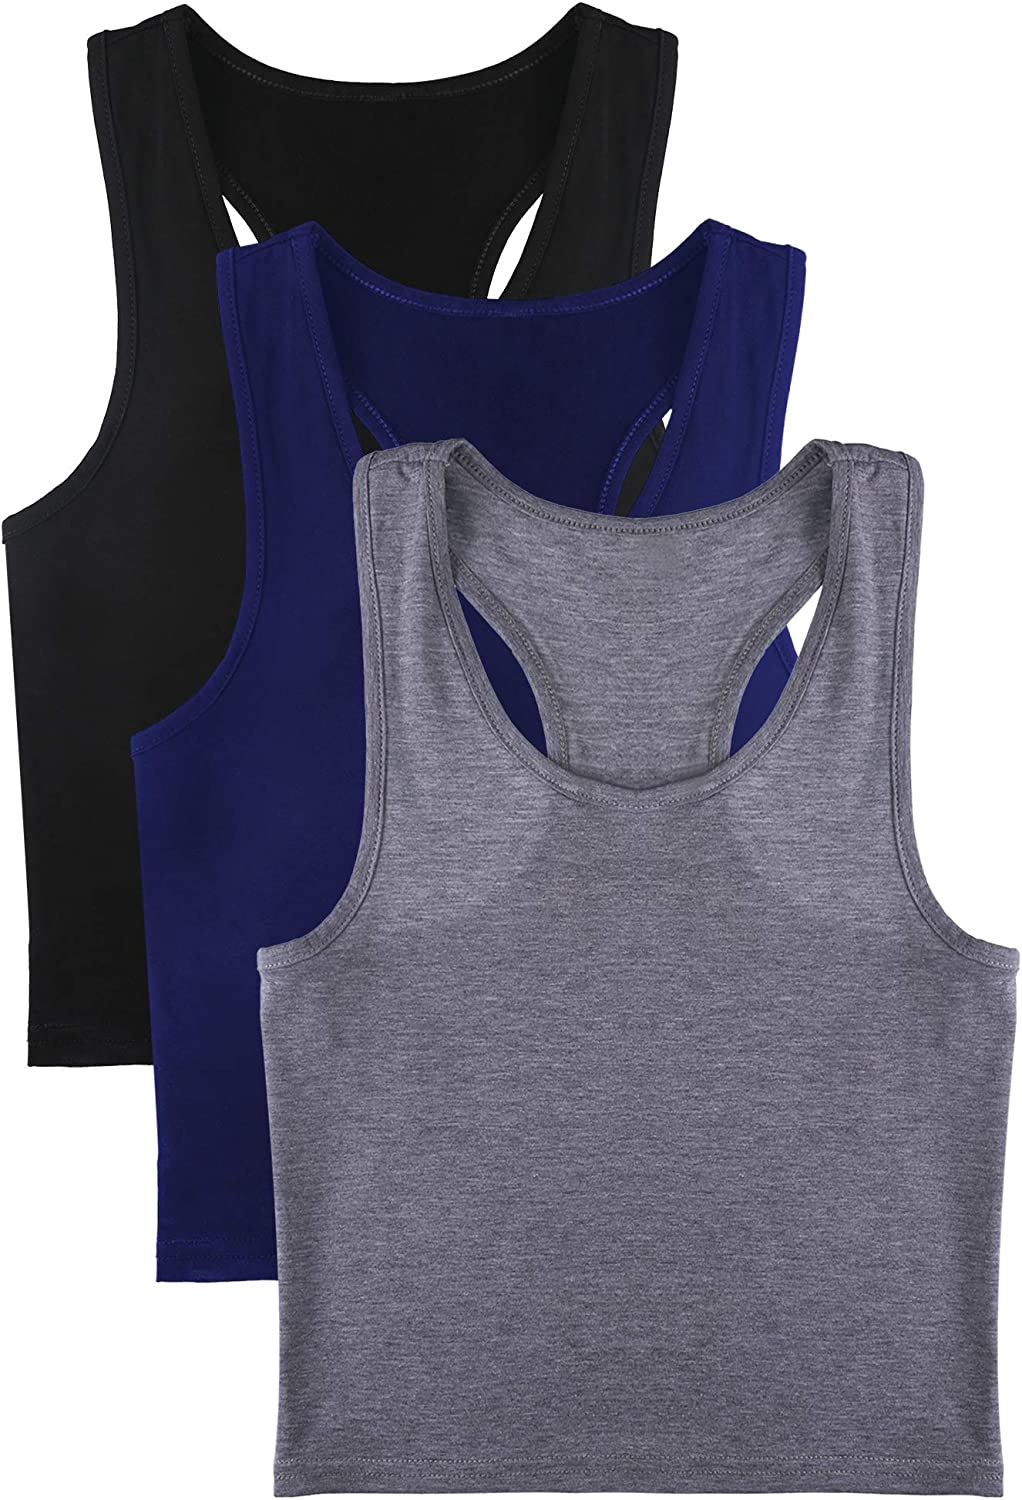 Boao 3 Pieces Womens Cotton Basic Sleeveless Racerback Crop Tank Top Sports Crop Top for Daily Wearing